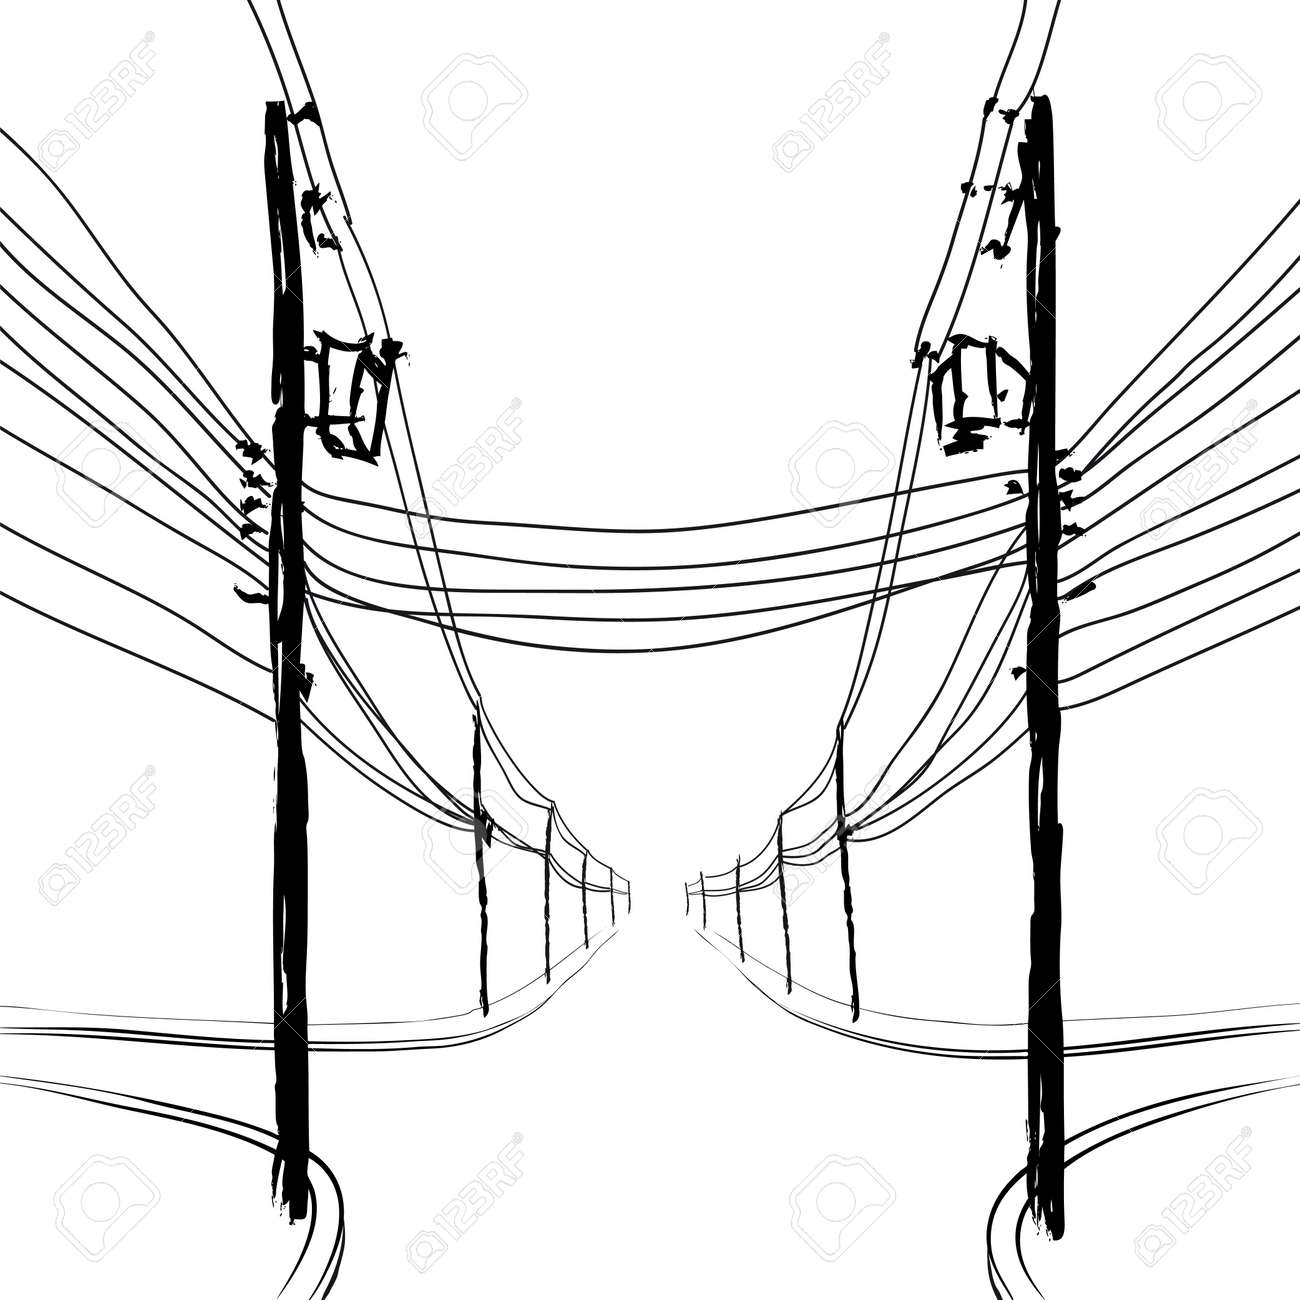 electricity pole : poles with